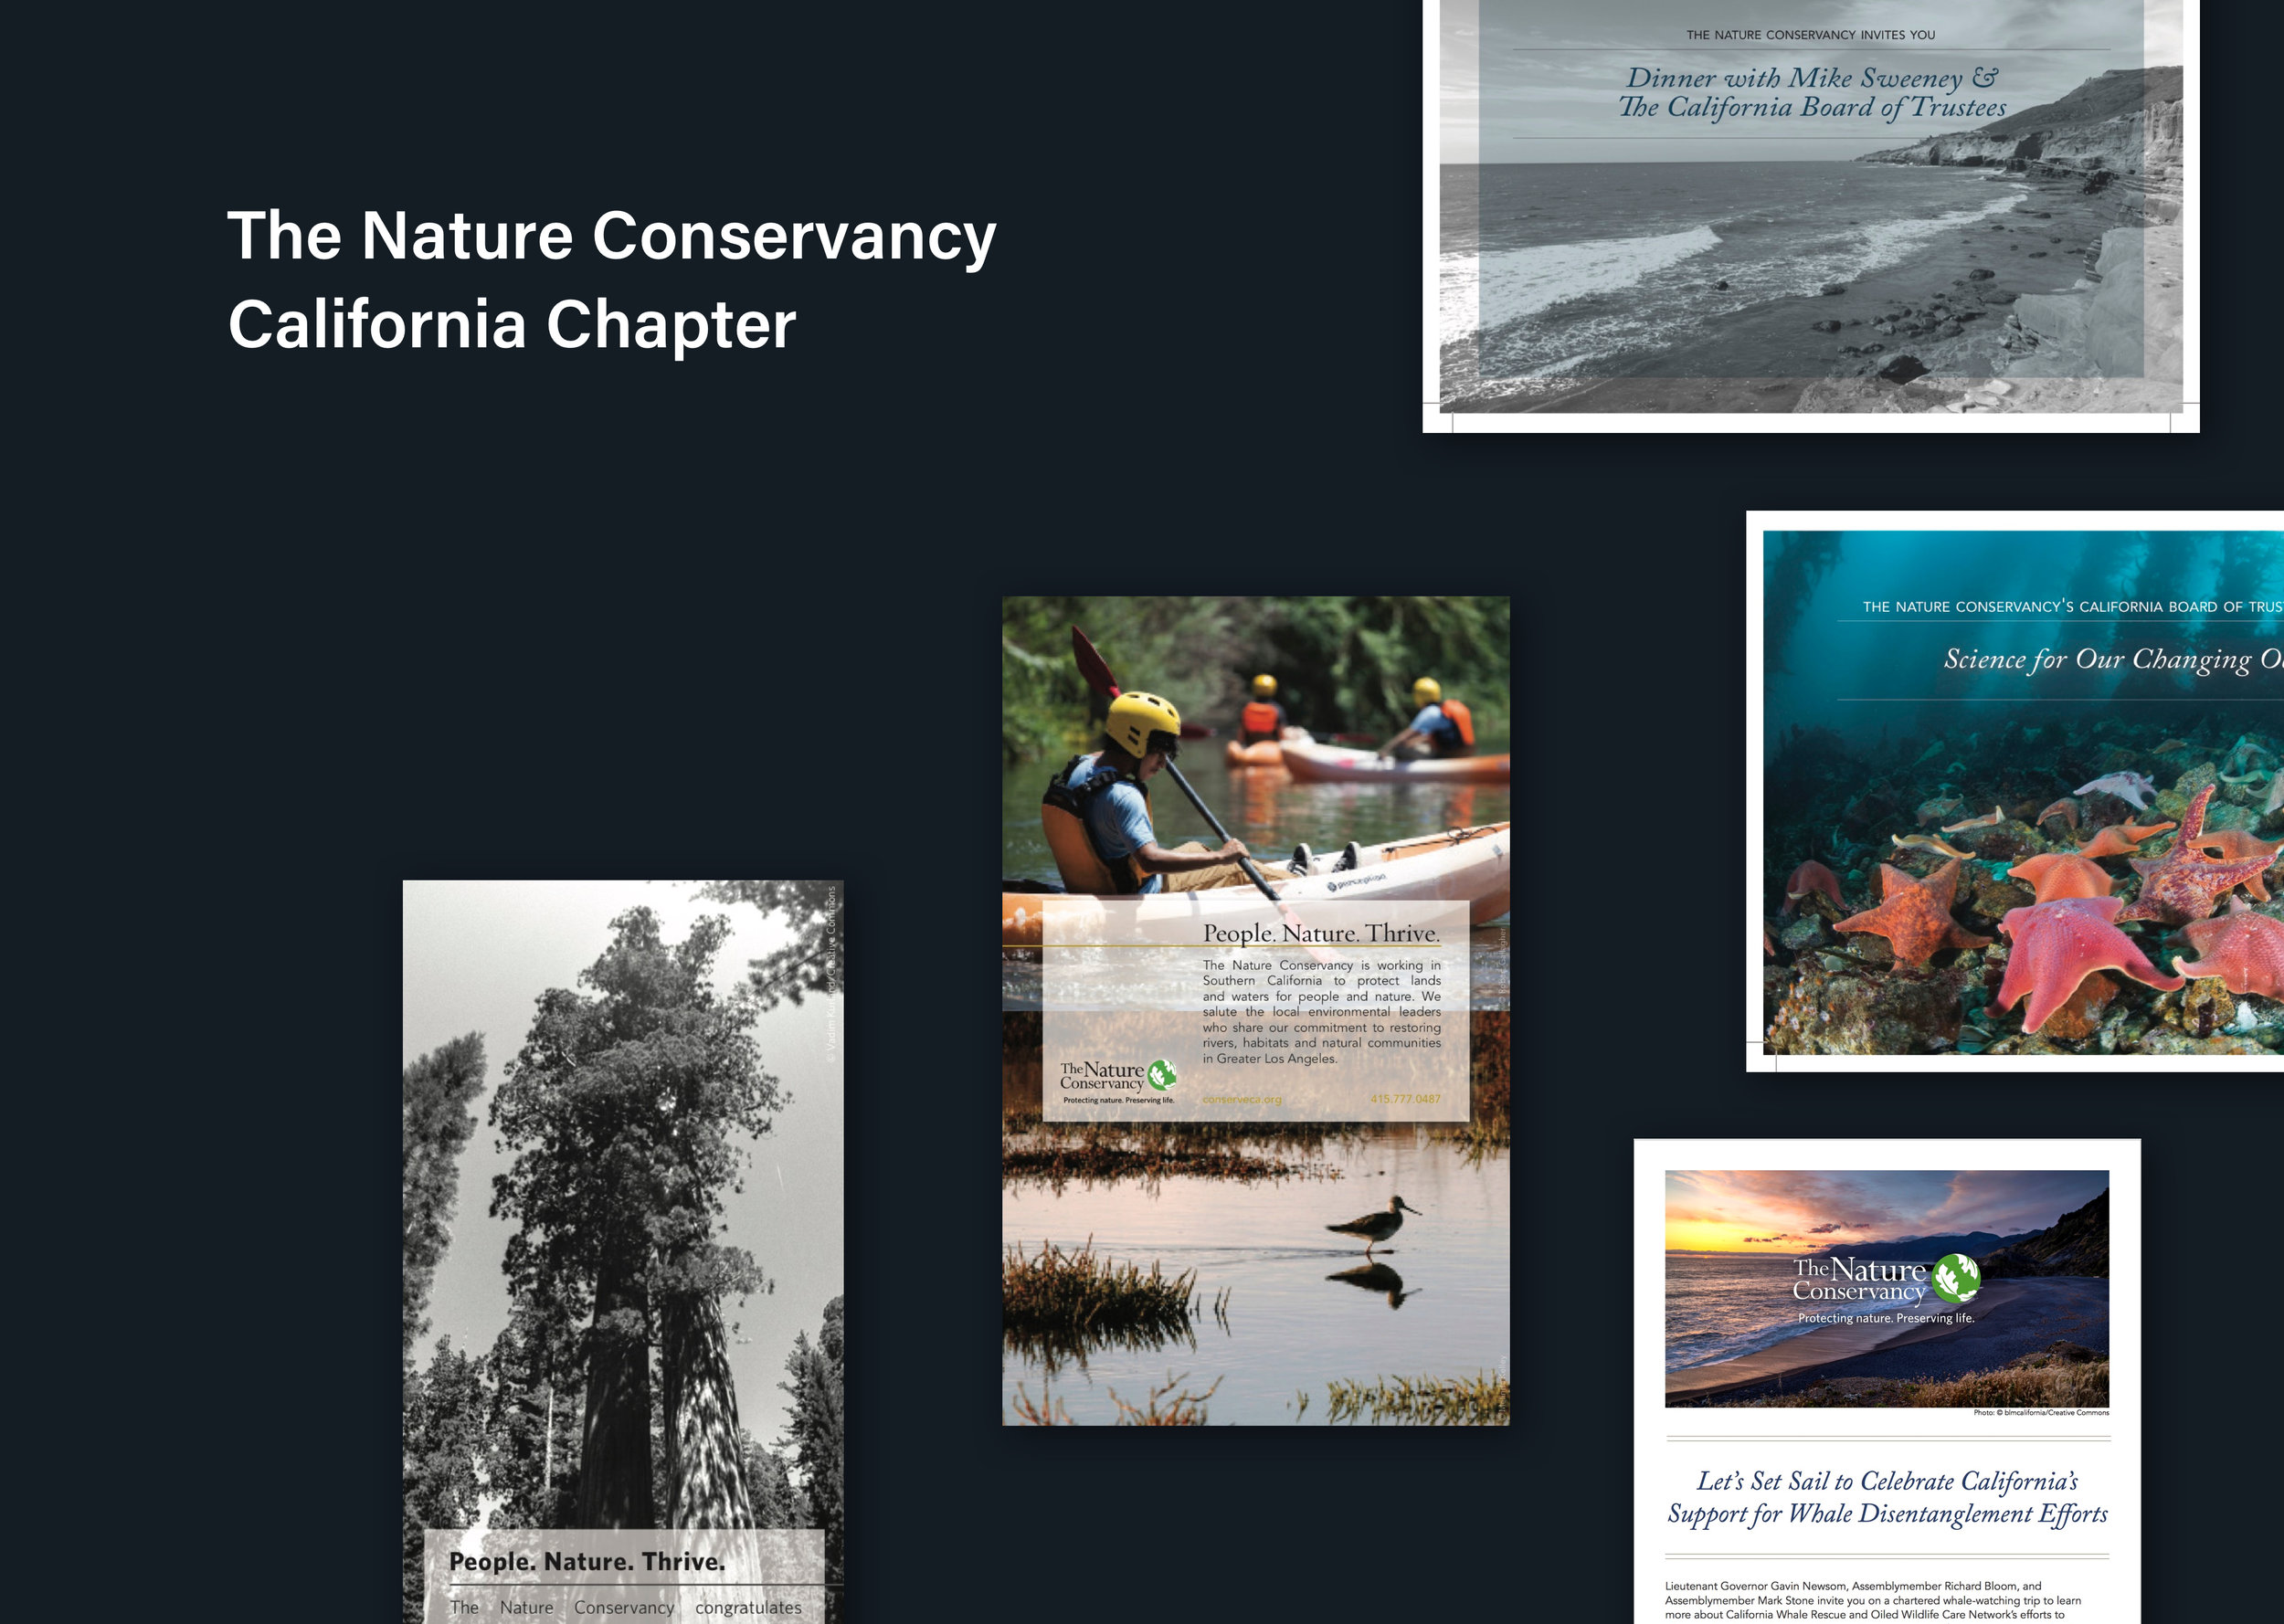 The Nature Conservancy in California Communications - Evites, Printed Invitations, AdsCommunication Design | Production Design | Graphic Design |Digital | Print